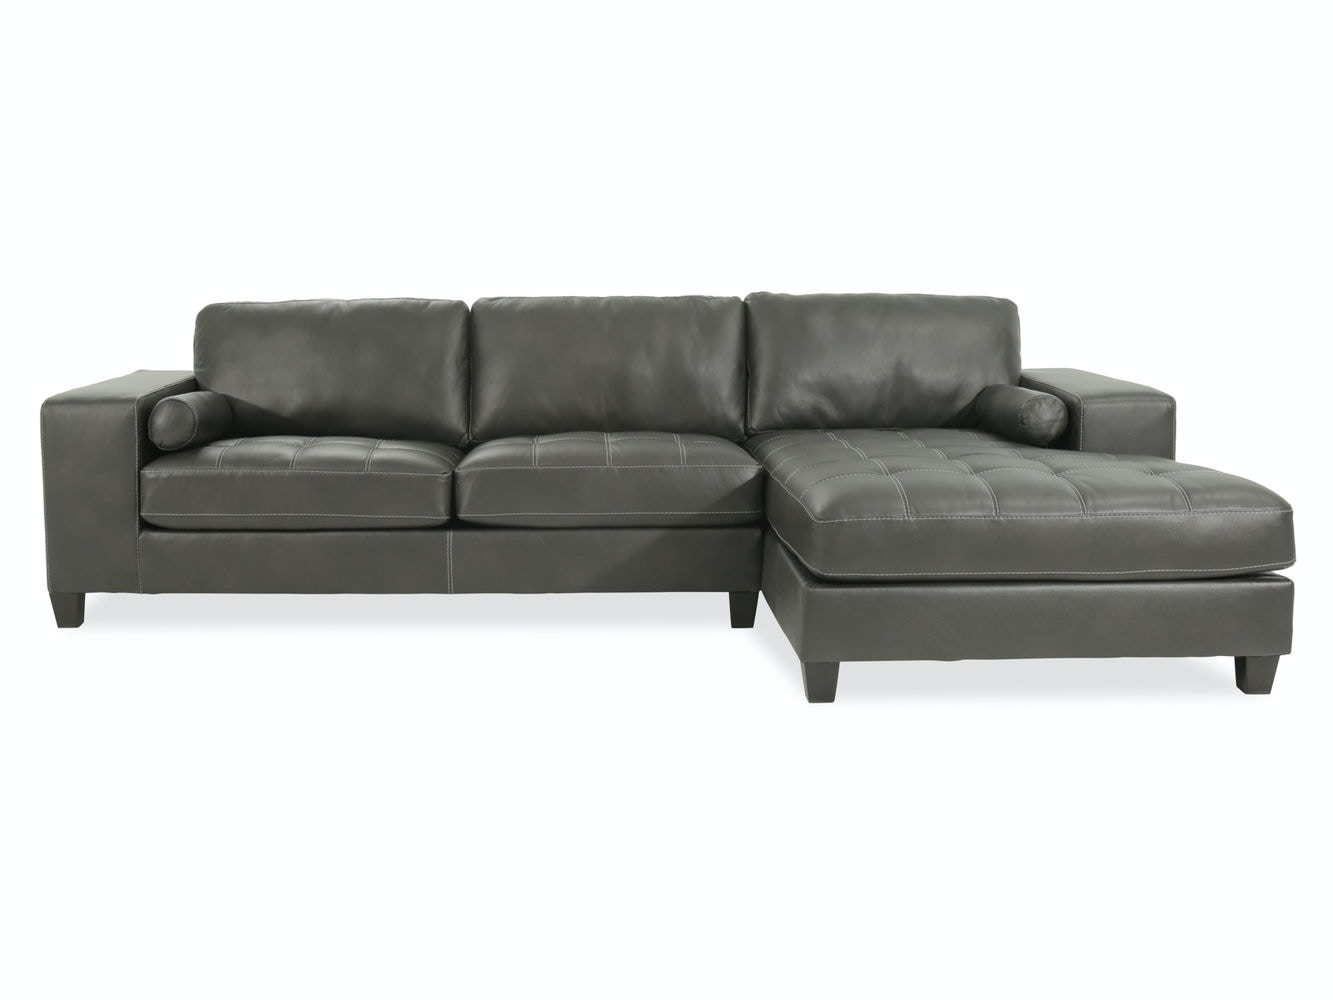 Ashley Nokomis LAF Sofa U0026 RAF Corner Chaise Sectional 87701 66 17 In  Portland